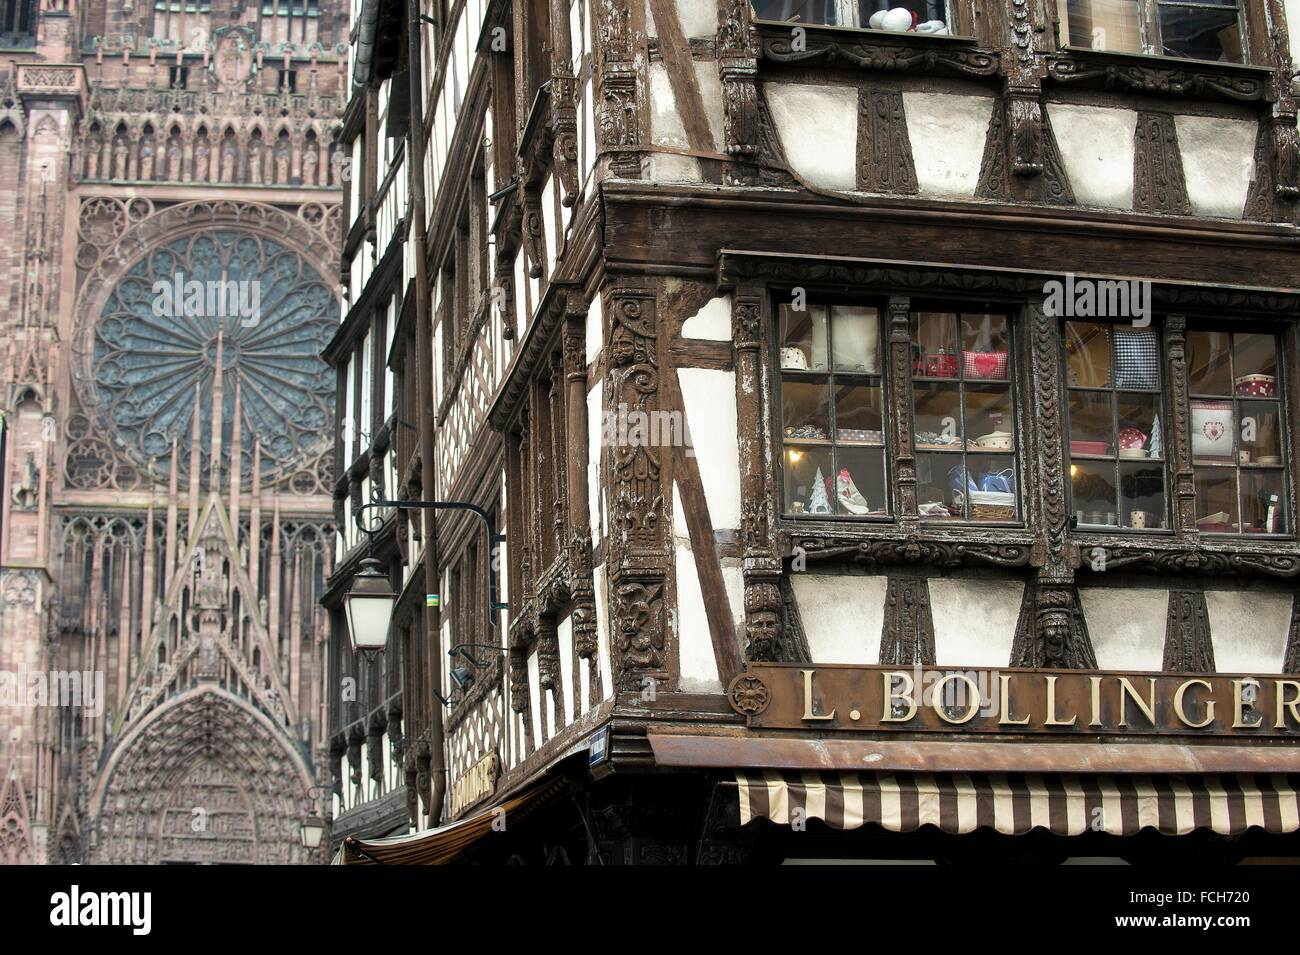 Strasbourg, frame house beside gothic cathedral, Alsace, France. - Stock Image